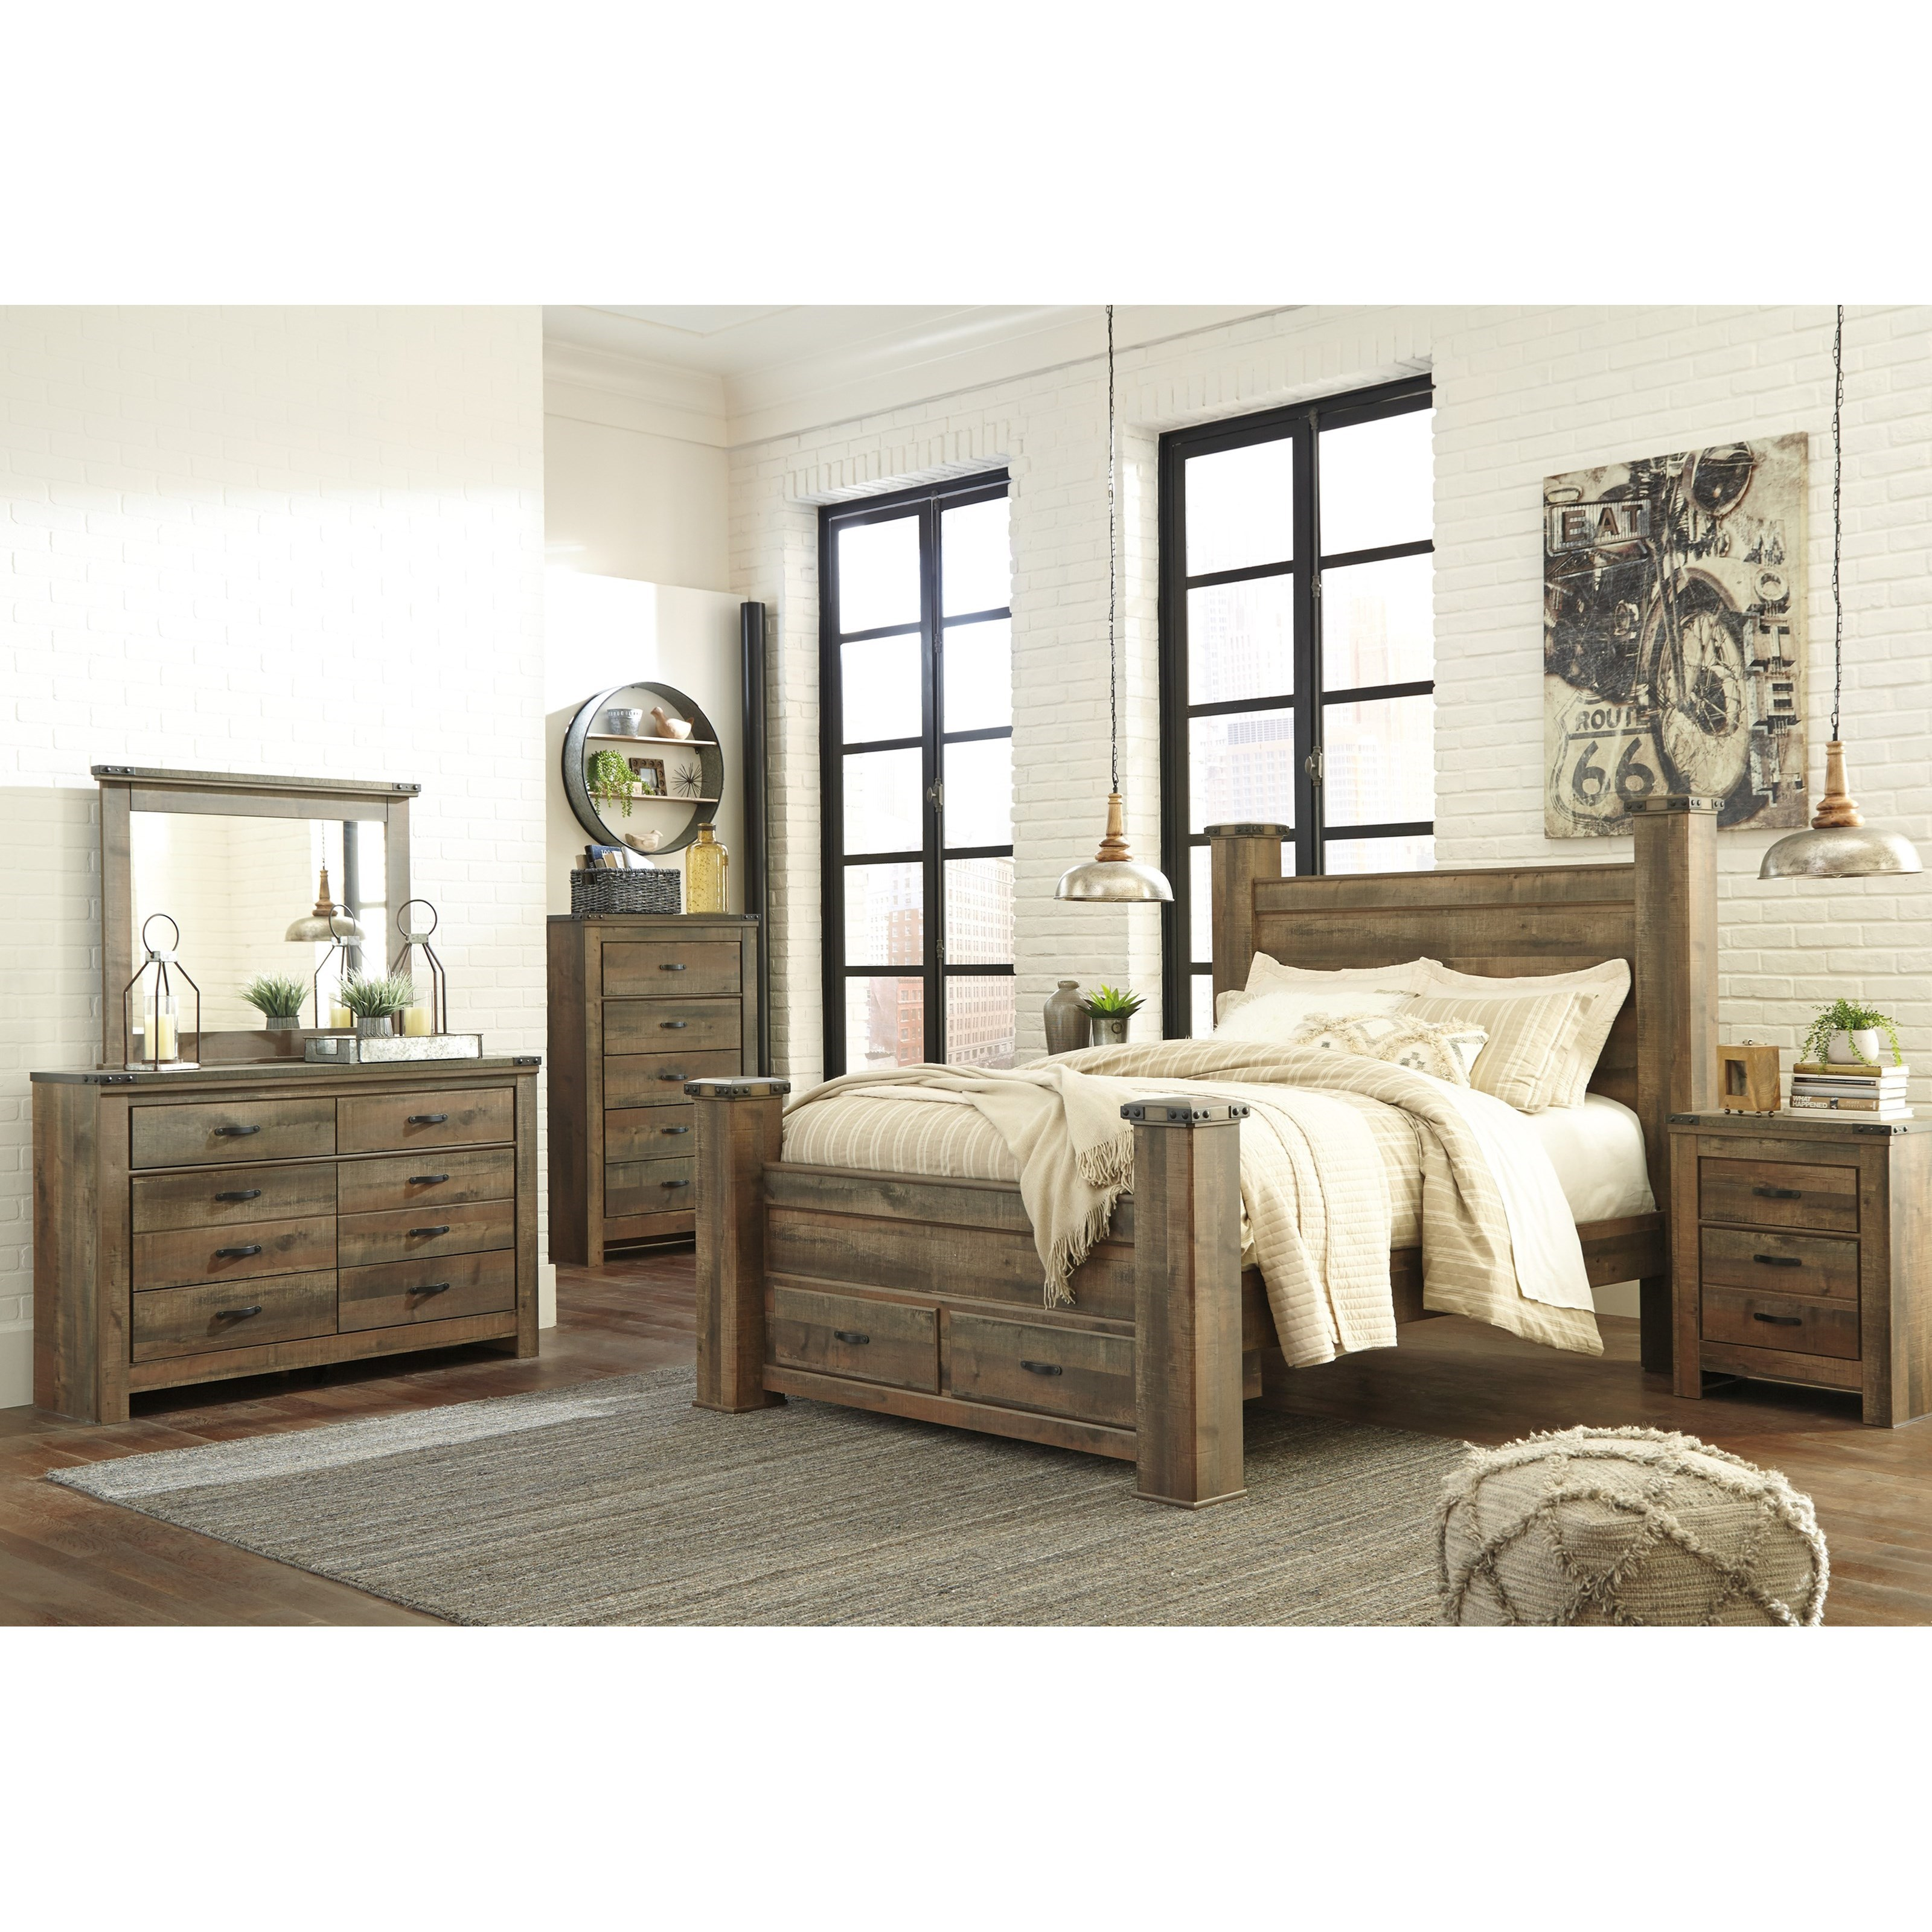 Trinell Queen Bedroom Group by Signature Design by Ashley at Zak's Warehouse Clearance Center